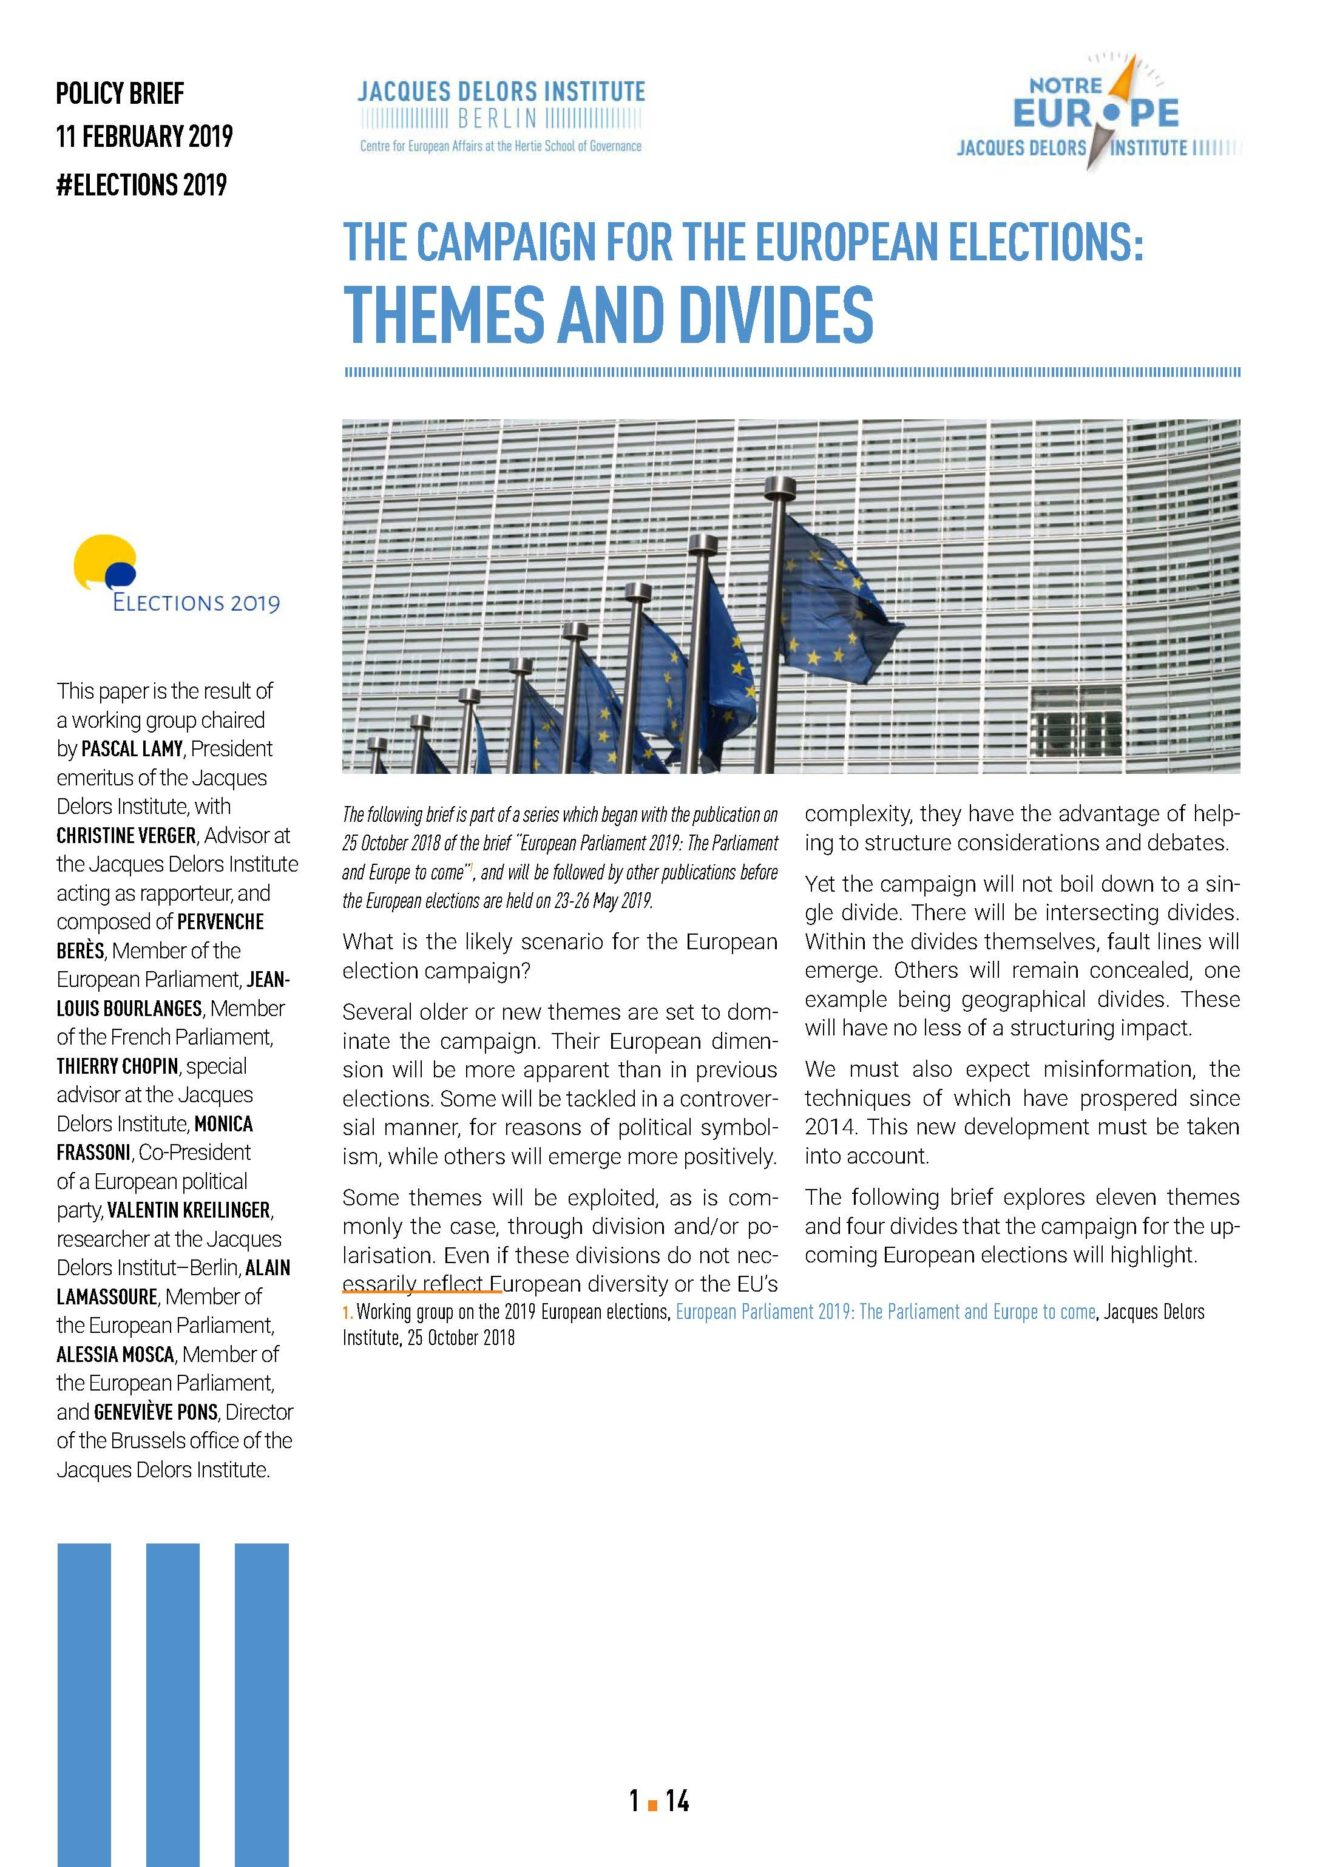 ThemesandDivides-Groupedetravailelectionseuropennes-Feb19_Page_01